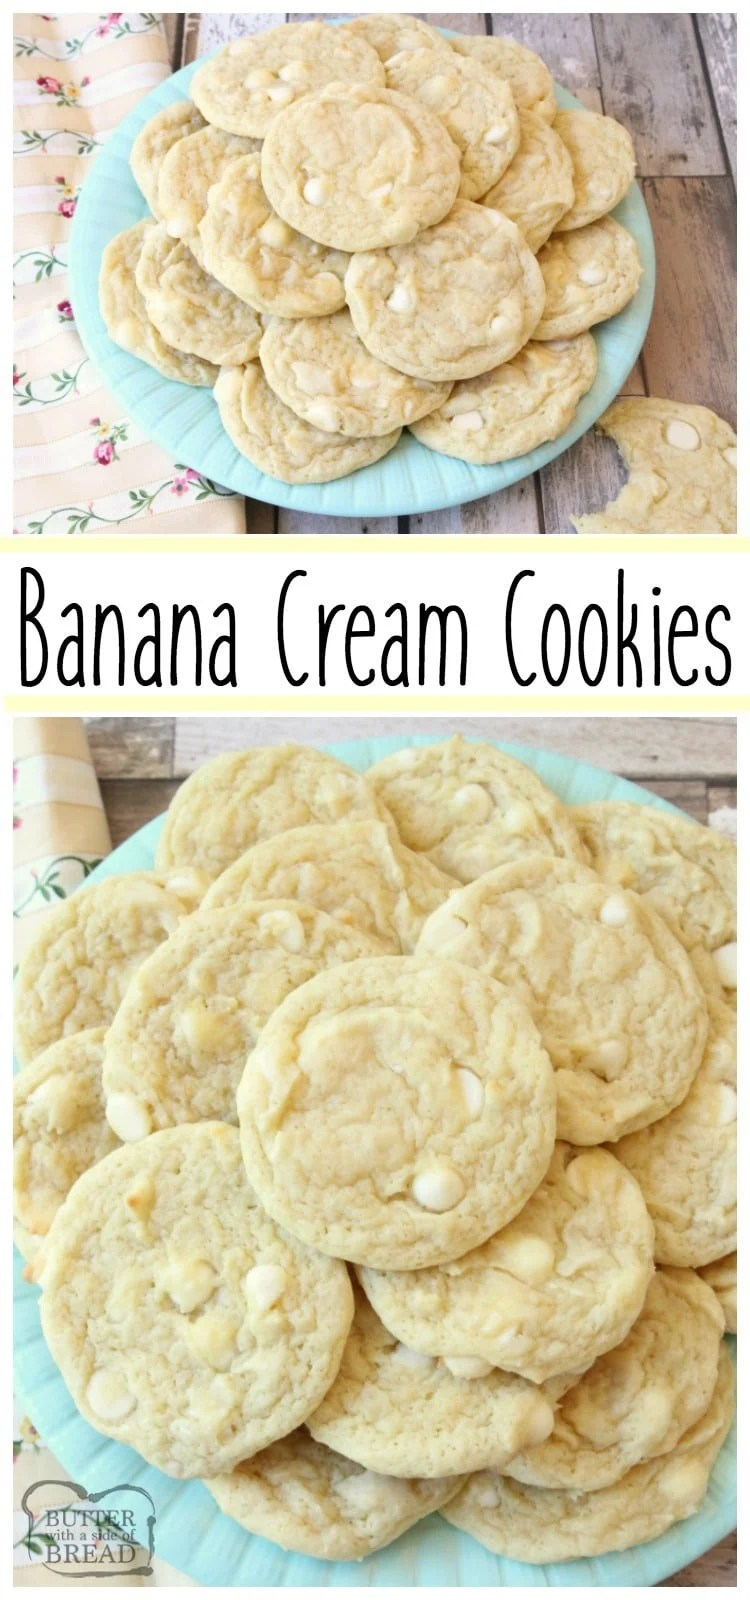 This Banana Cream Cookies recipe incorporates banana pudding mix & a banana into delectable cookies! Simple recipe for soft, flavorful & perfectly sweet cookies that everyone loves. Easy pudding cookie recipe from Butter With A Side of Bread